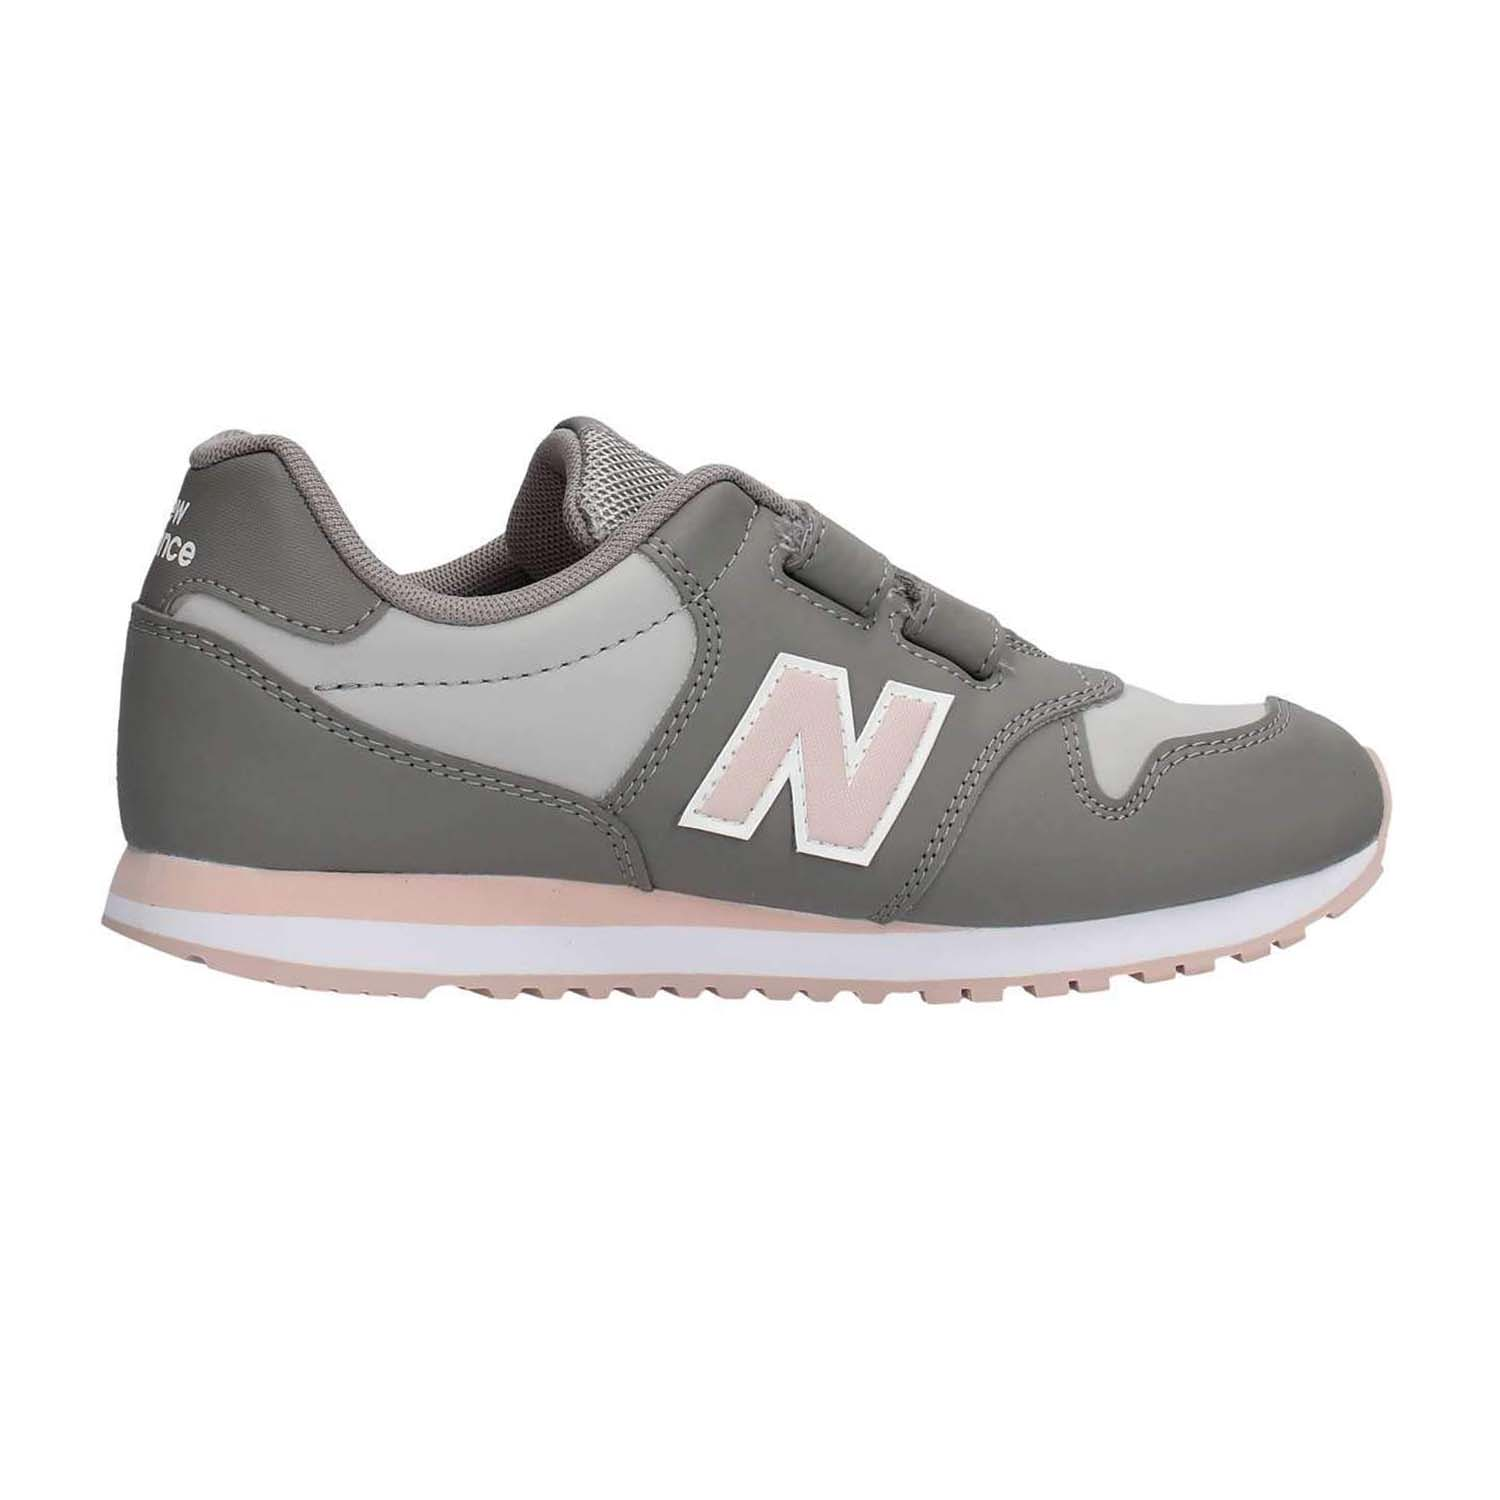 New Balance 500 Classics PS ( KV500PGY ) παπούτσια    παιδί    προσχολικά  size 27 5   35